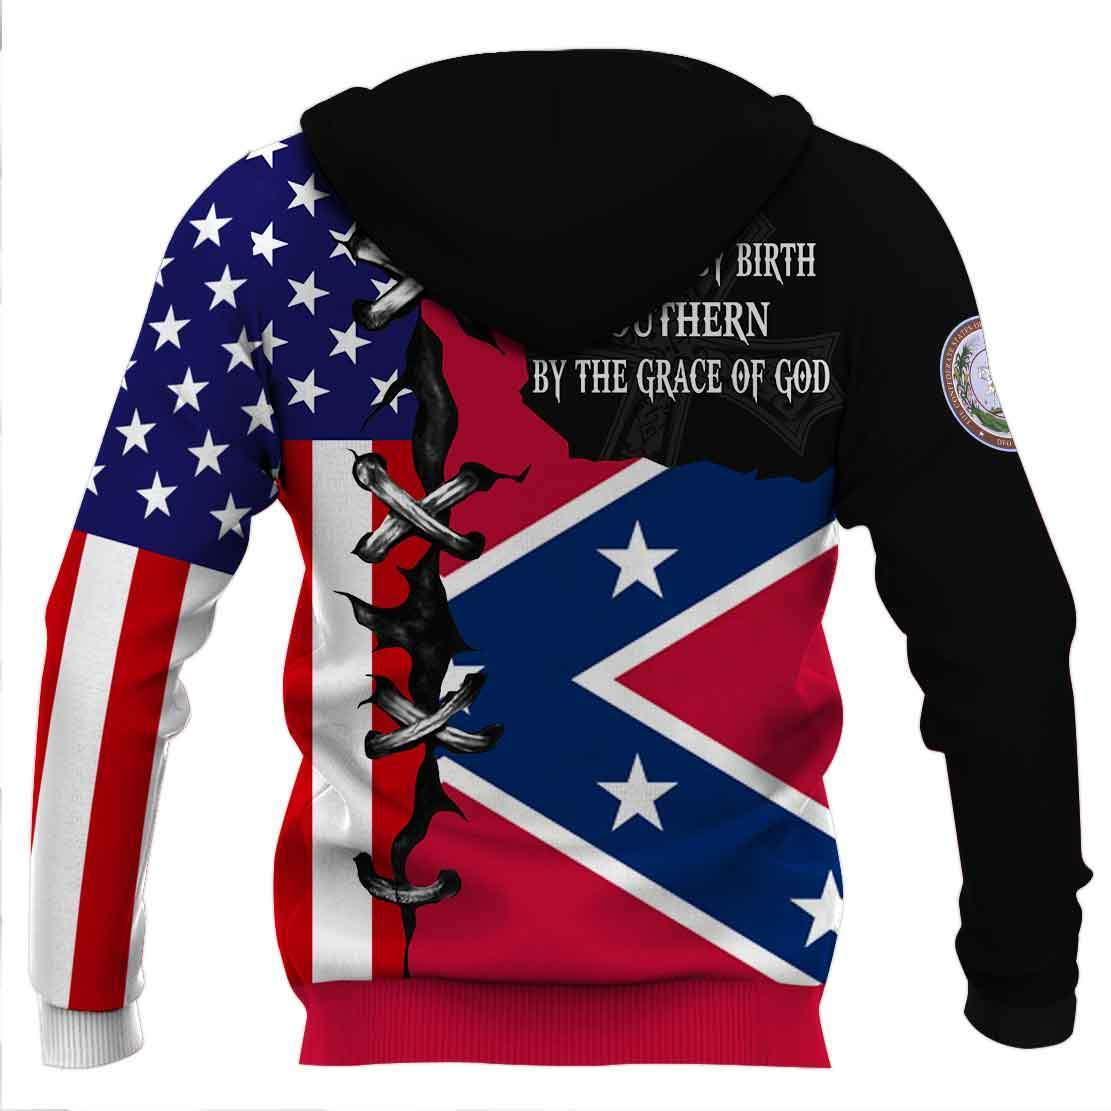 American by birth southern by the grace of god full printing shirtAmerican by birth southern by the grace of god full printing hoodie - back